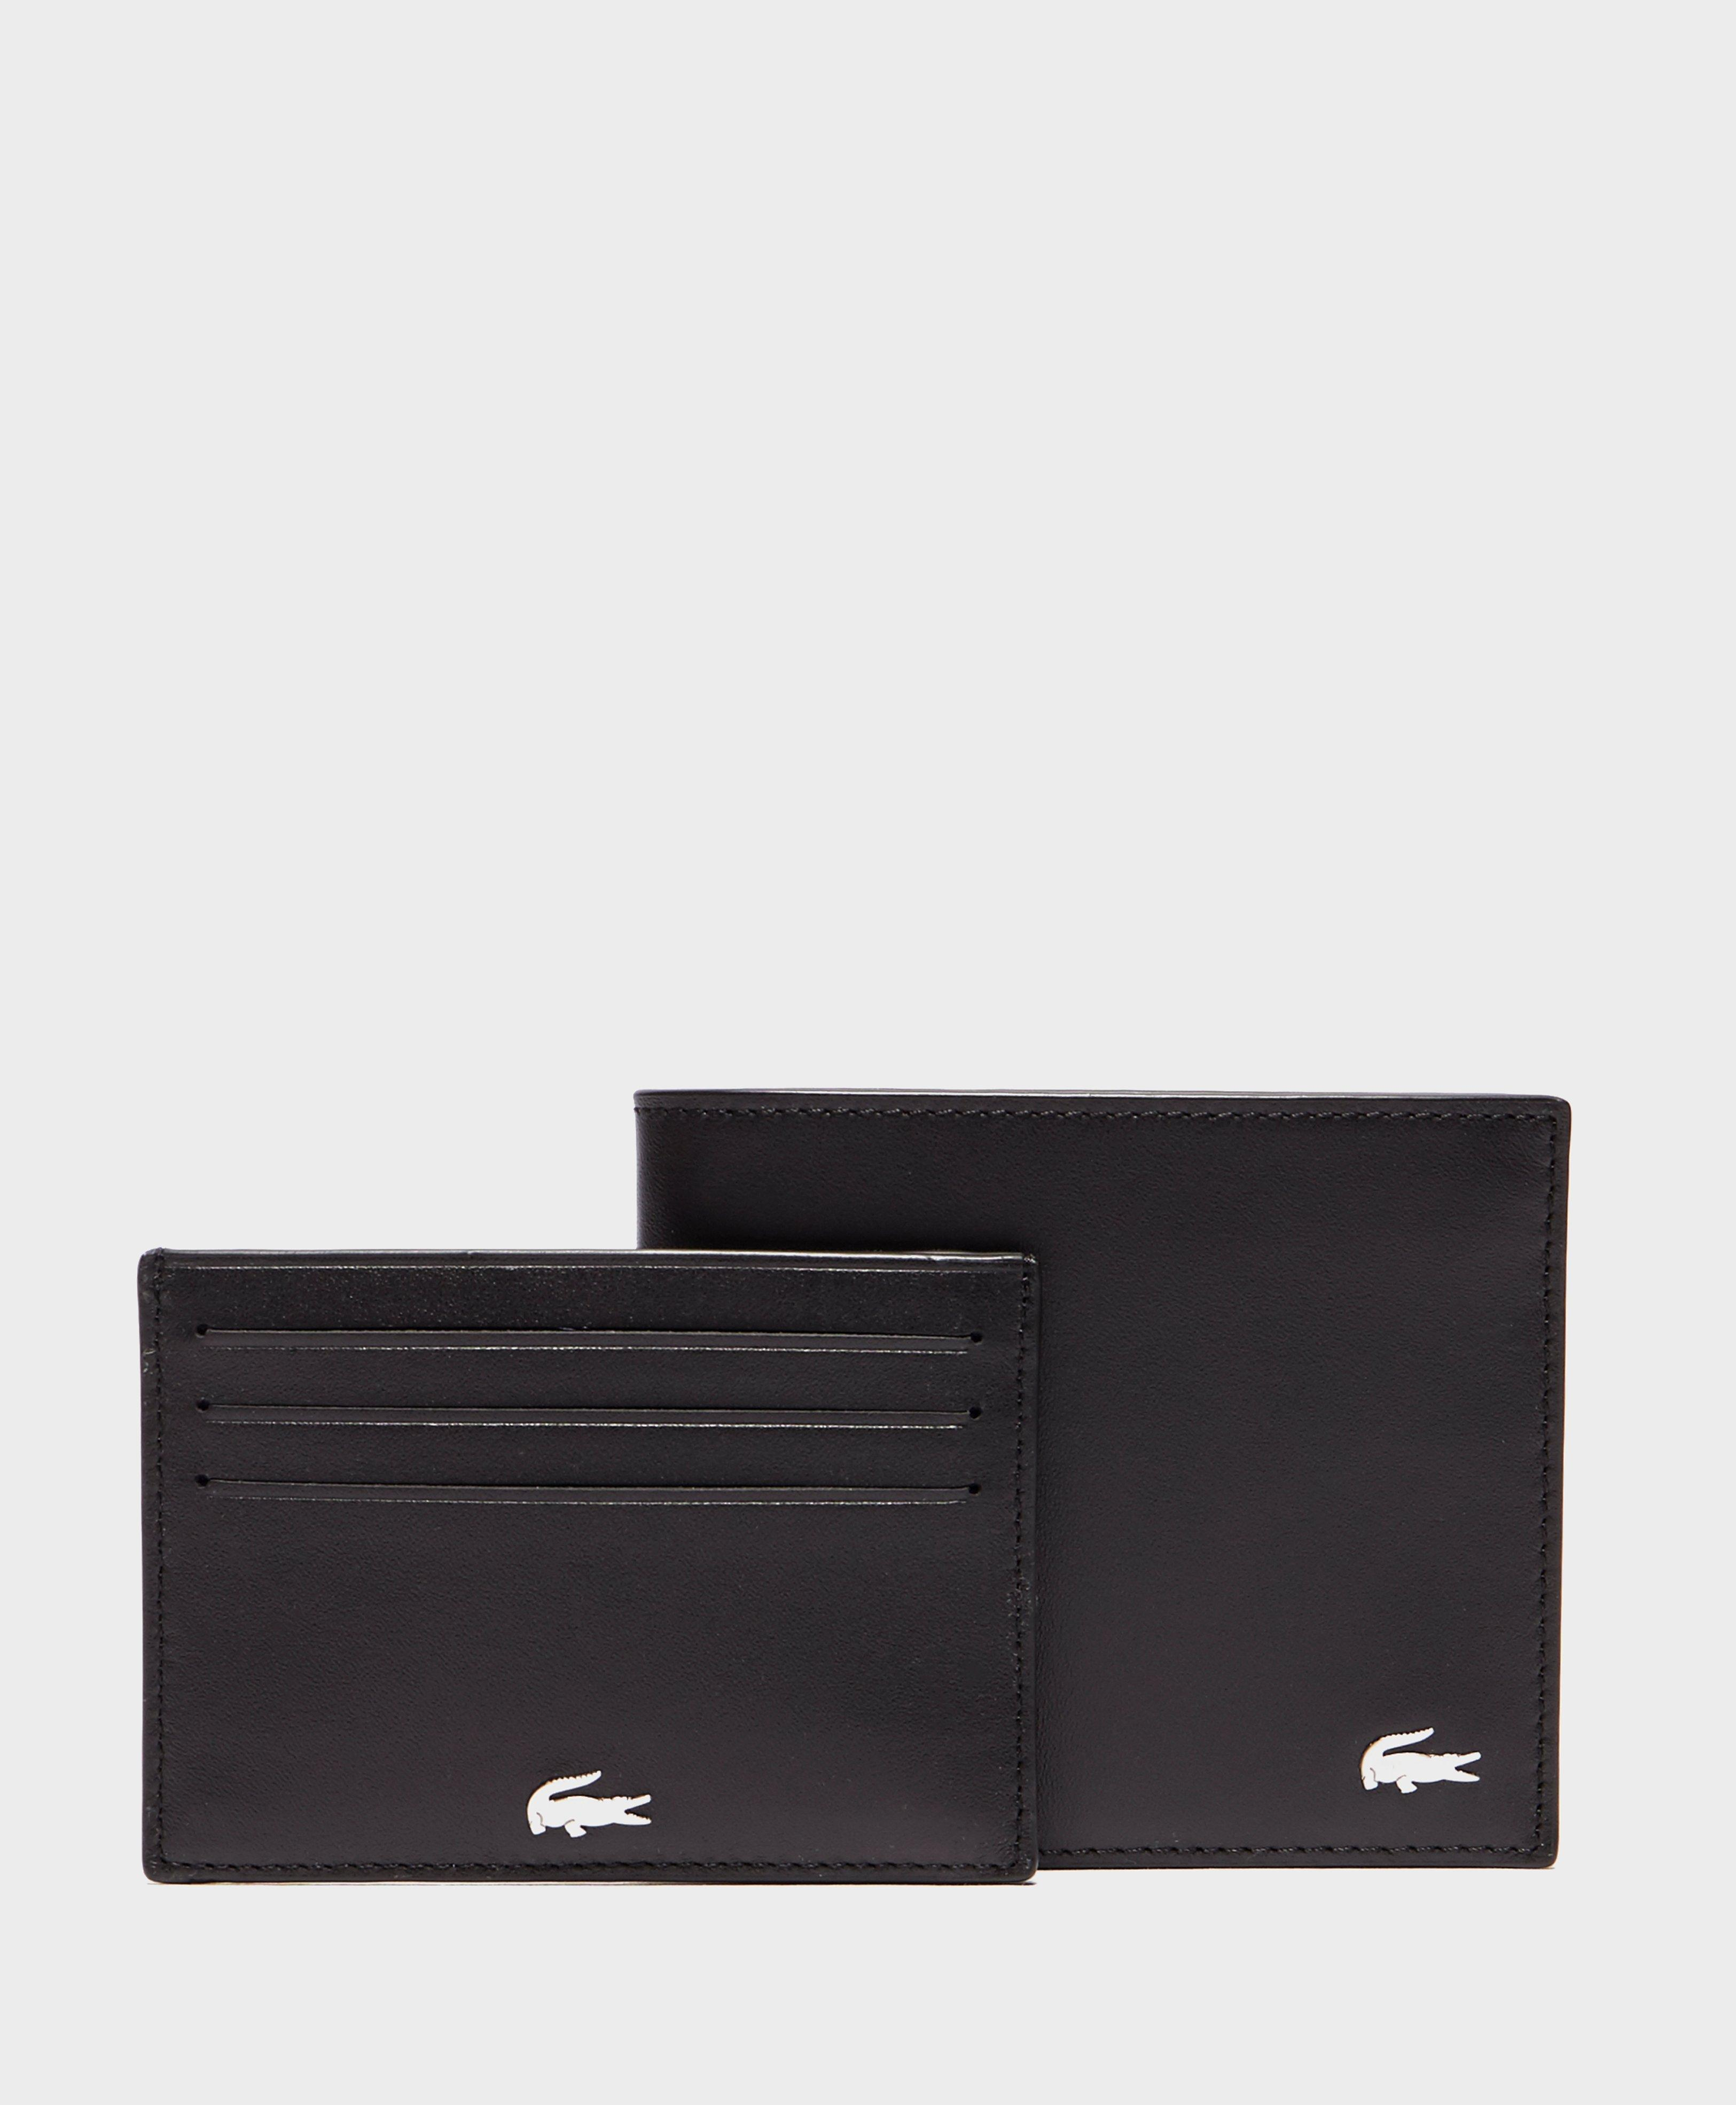 Lacoste Leather wallet Card Holder.